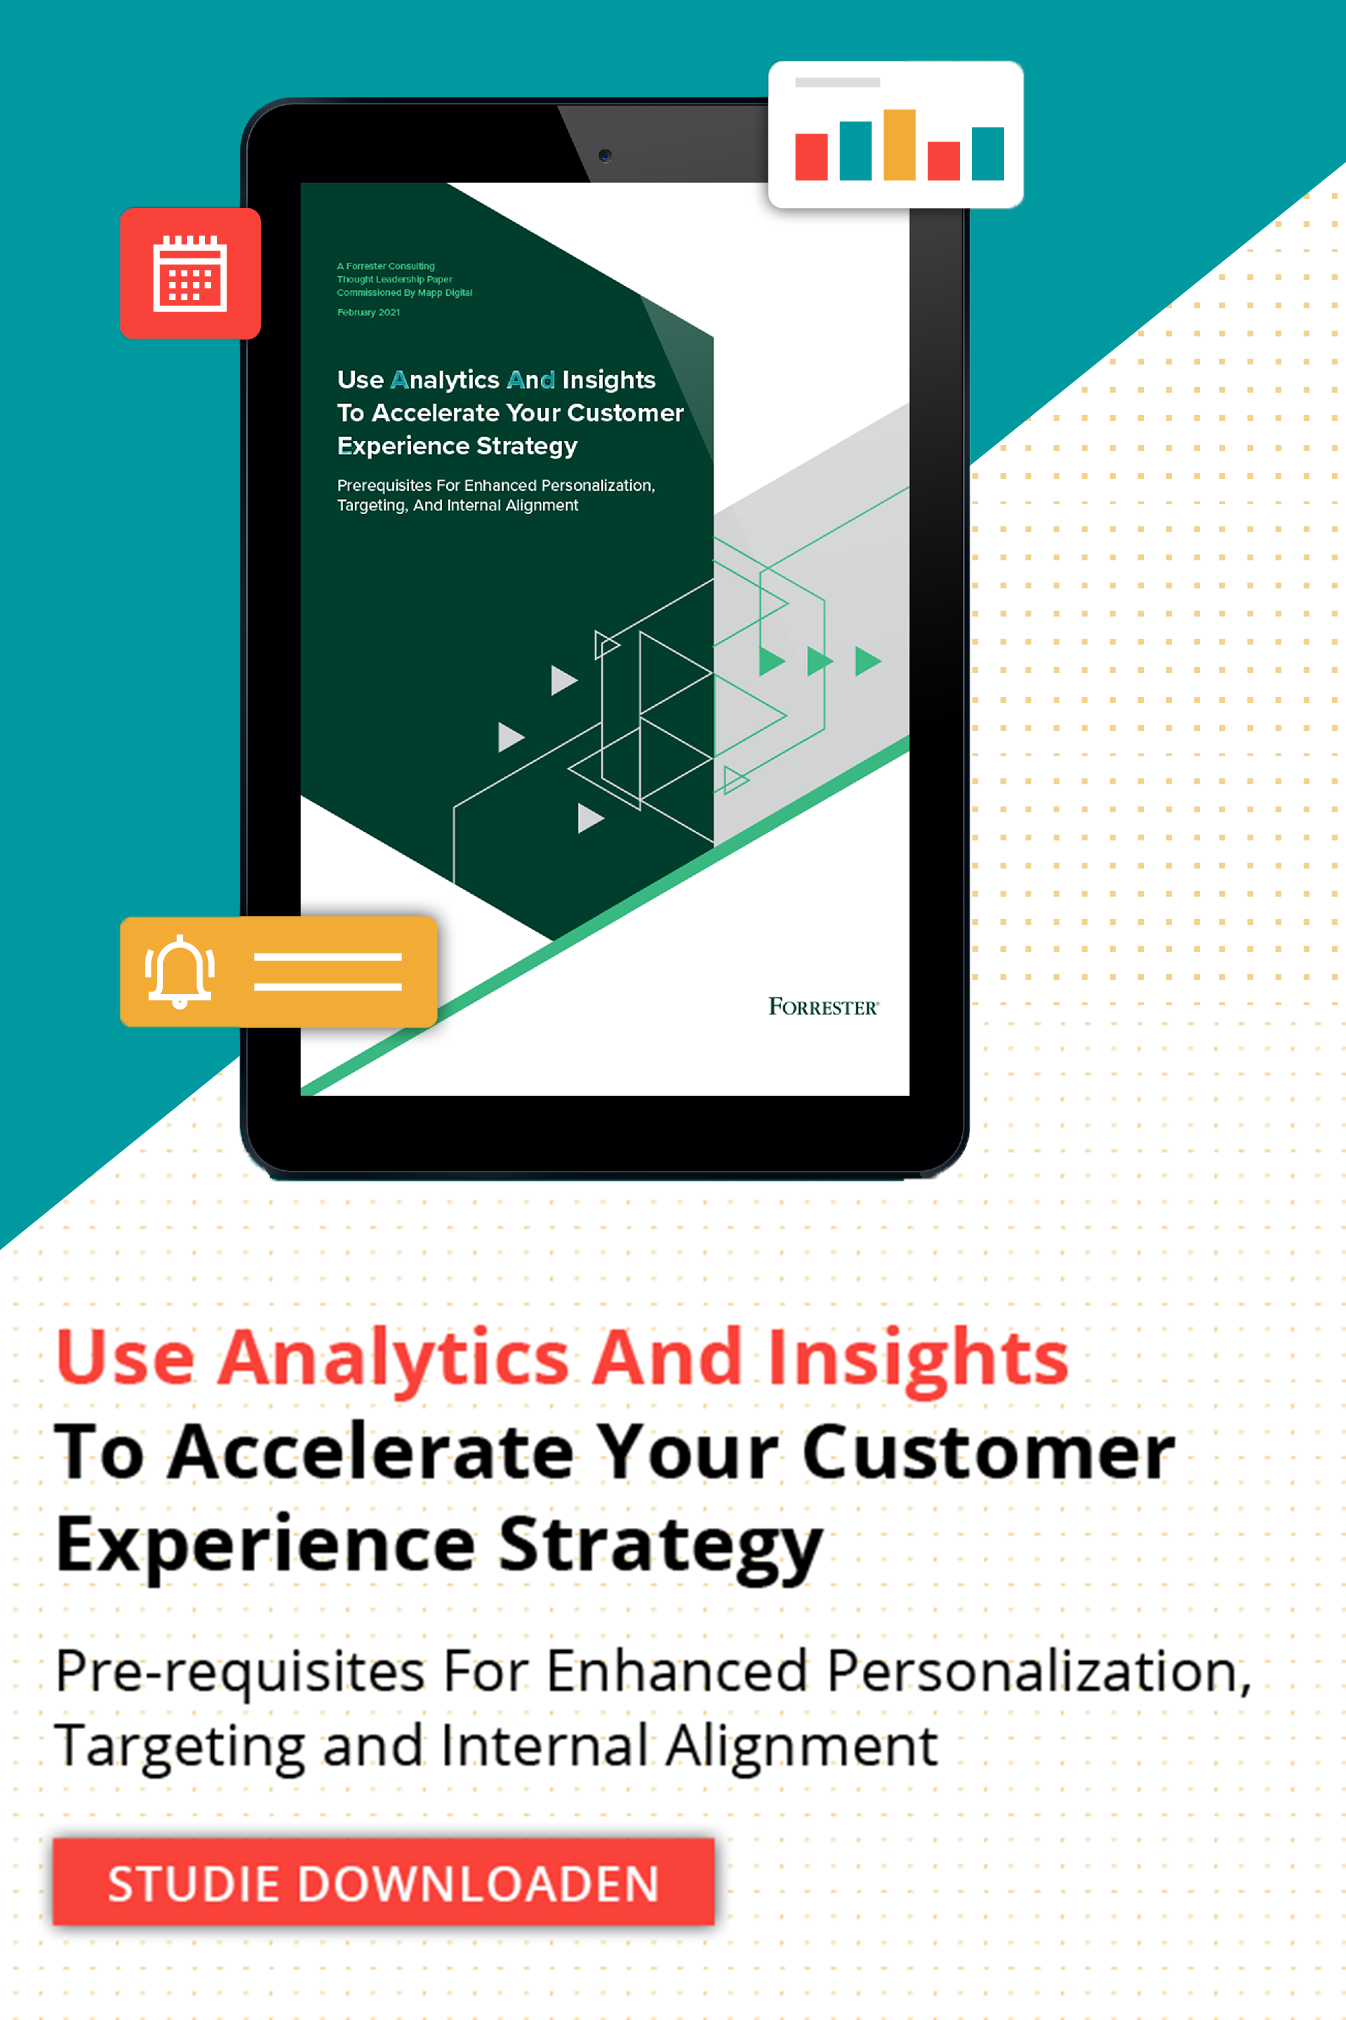 Use Analytics And Insights To Accelerate Your Customer Experience Strategy